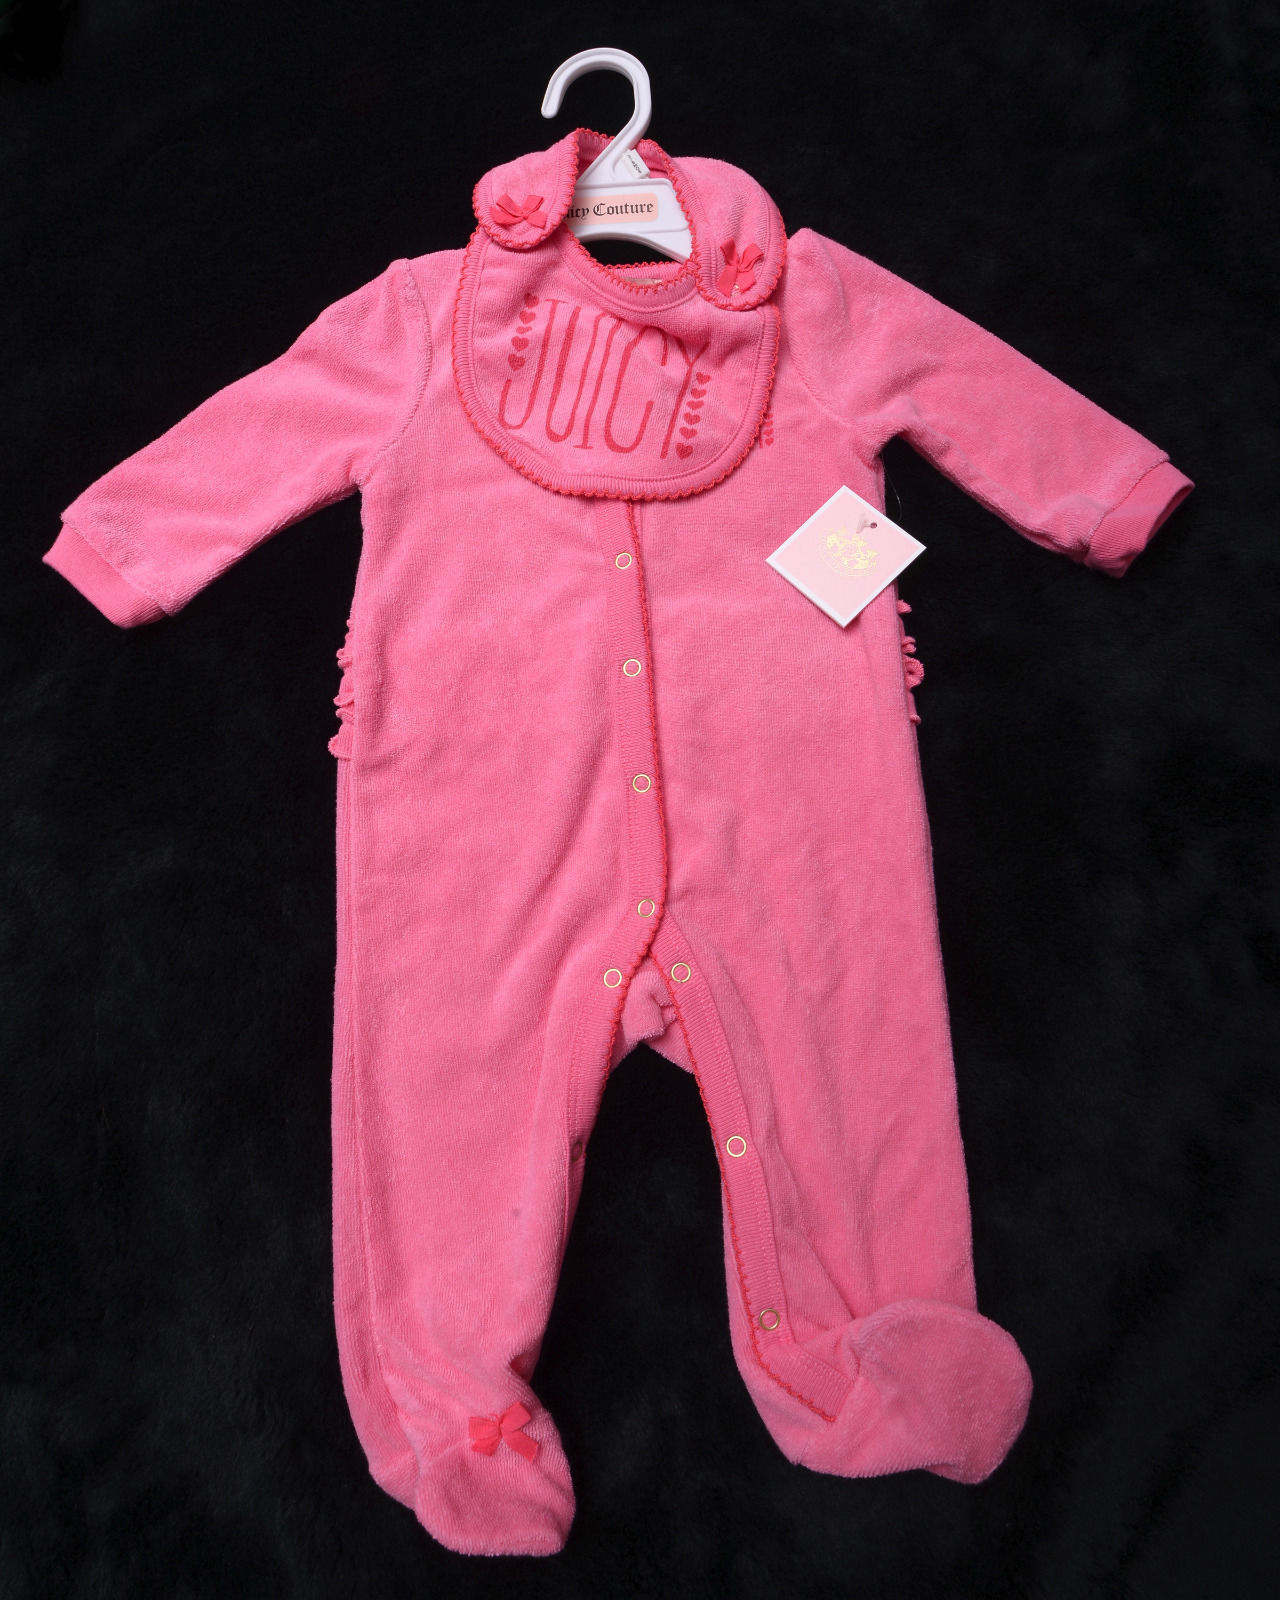 NWT NEW 2 Piece JUICY COUTURE Baby FOOTIE with BIB Size 6/9 Months Snaps - $42.20